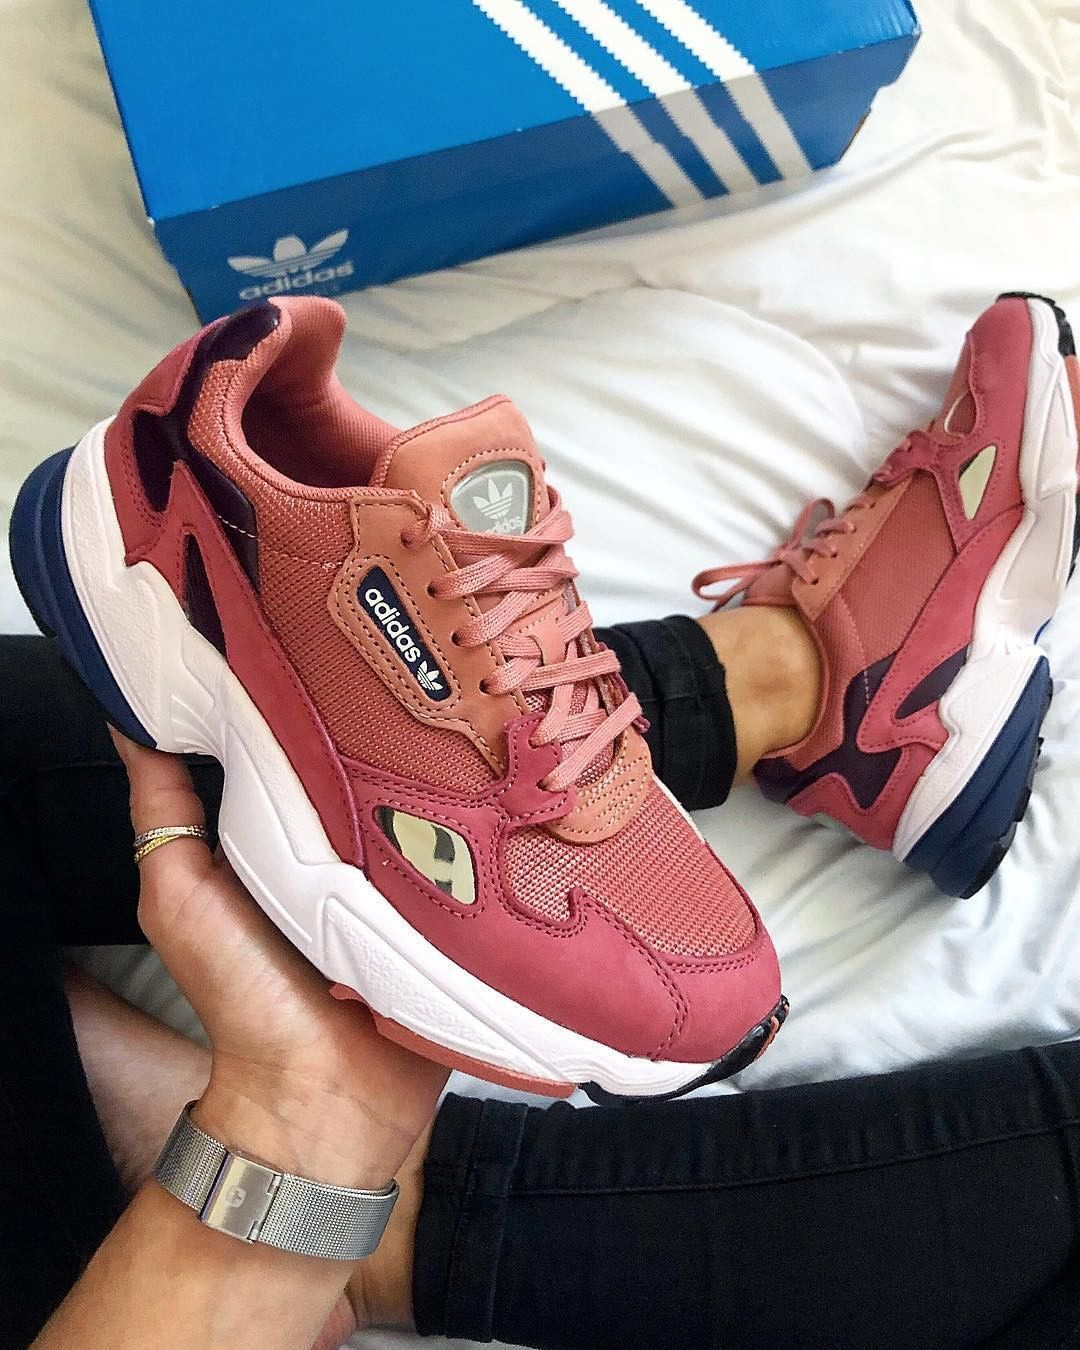 Banco conservador beneficioso  adidas Falcon Shoes - Pink | Pink adidas, Sneakers, Pink shoes